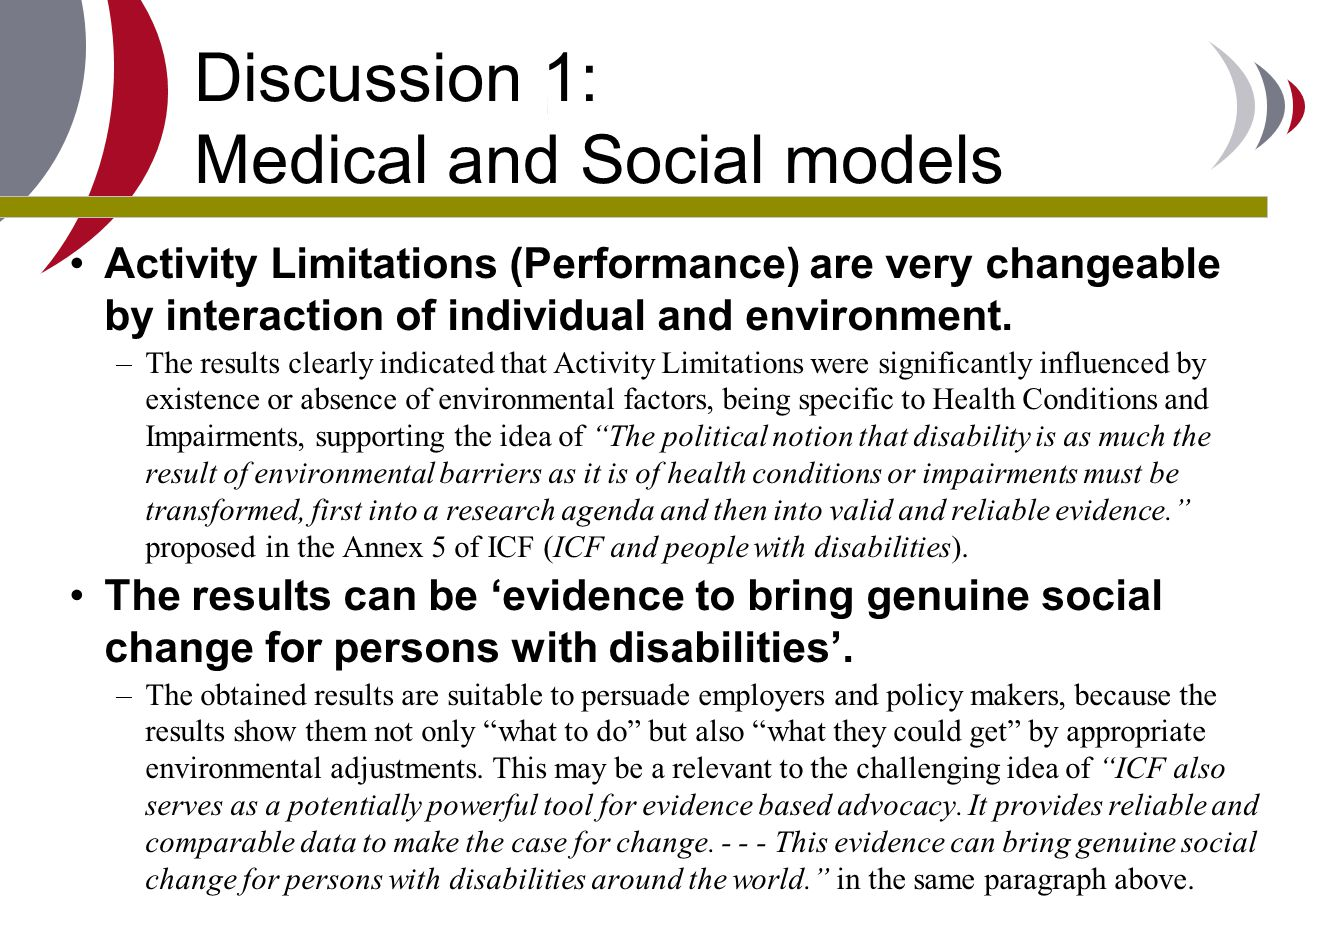 Discussion 1: Medical and Social models